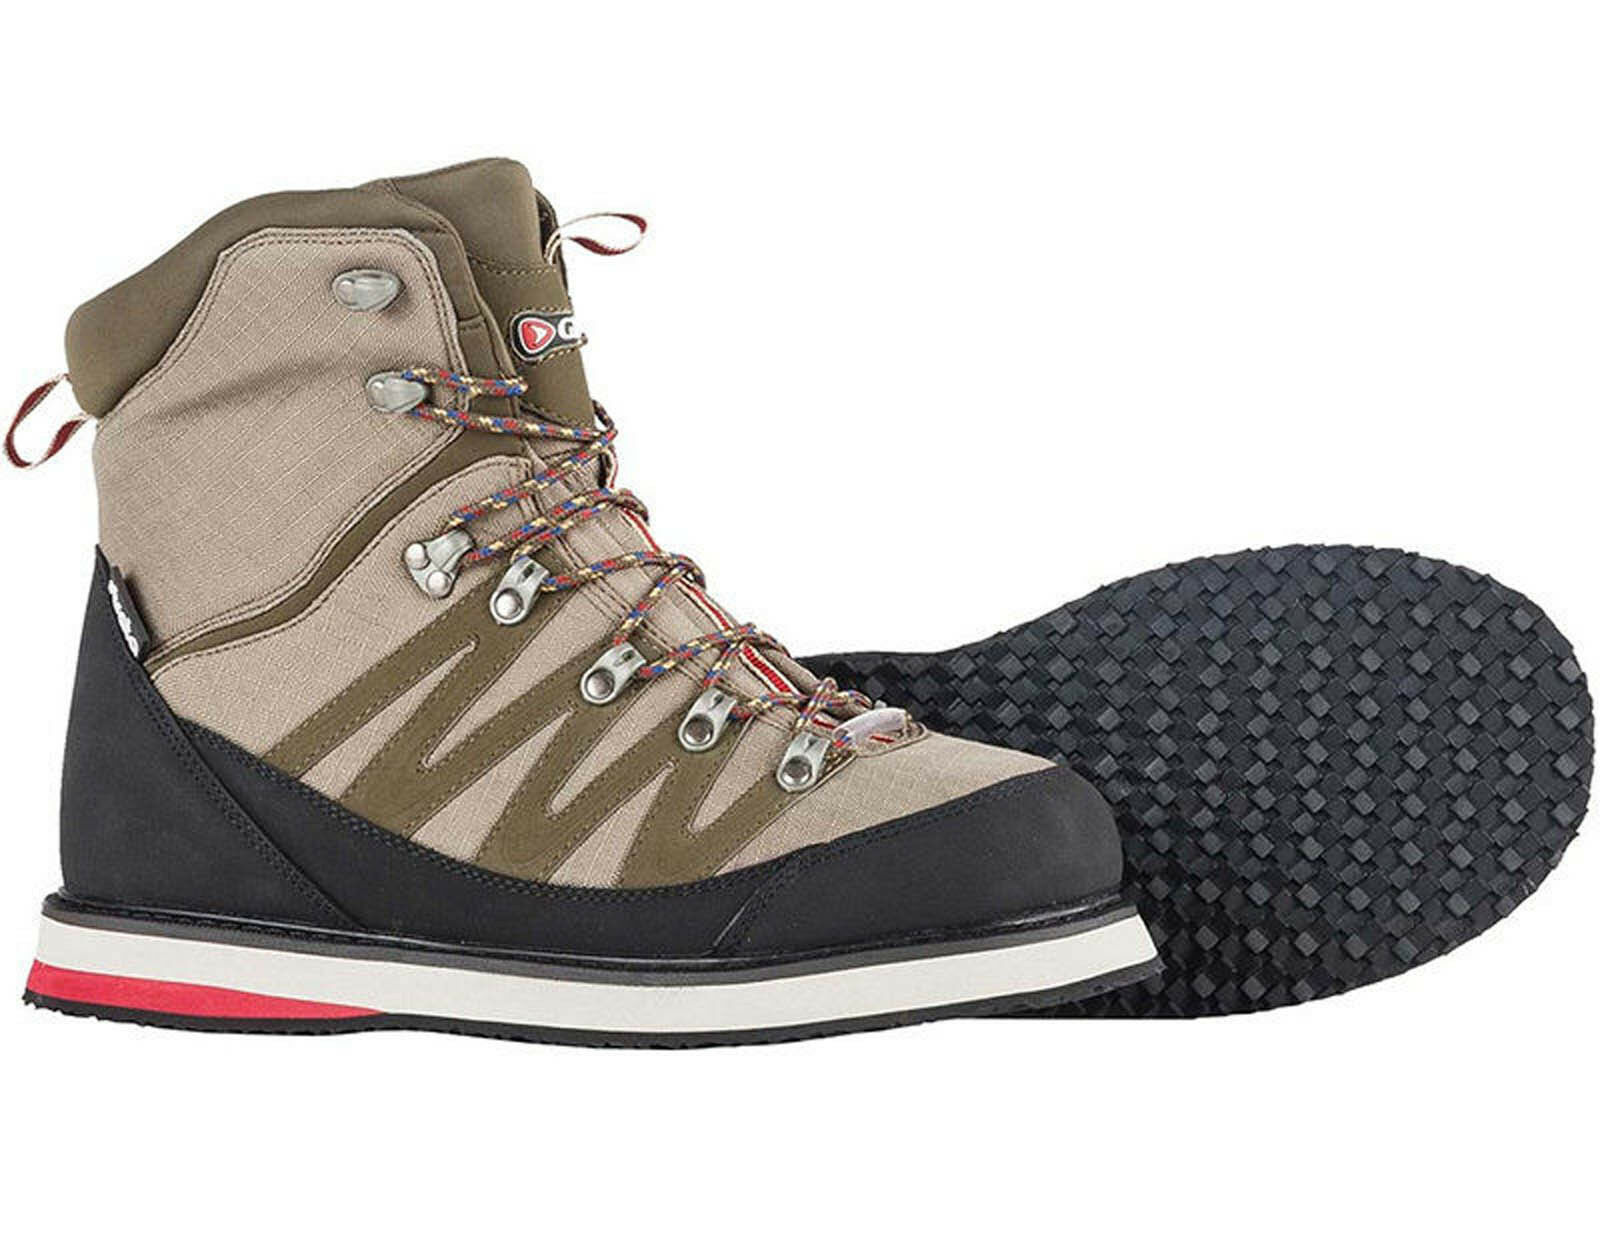 Greys Strata CT Rubber Sole Durable Fly Wading Fishing Boots - All Sizes